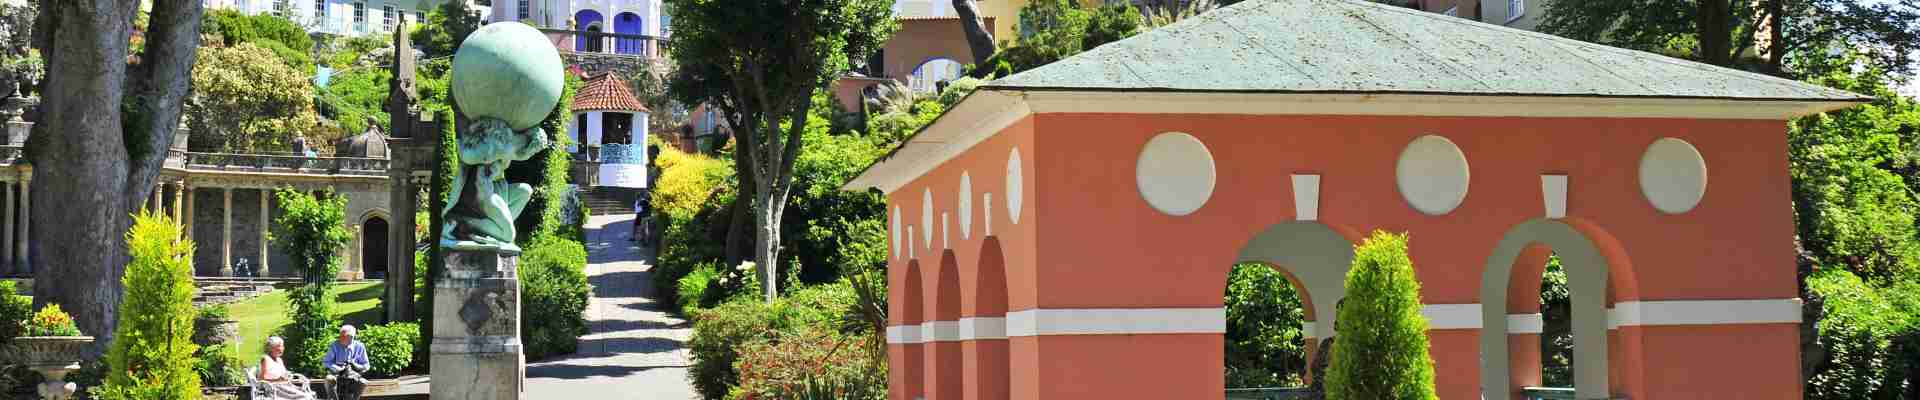 Portmeirion Holiday Cottages